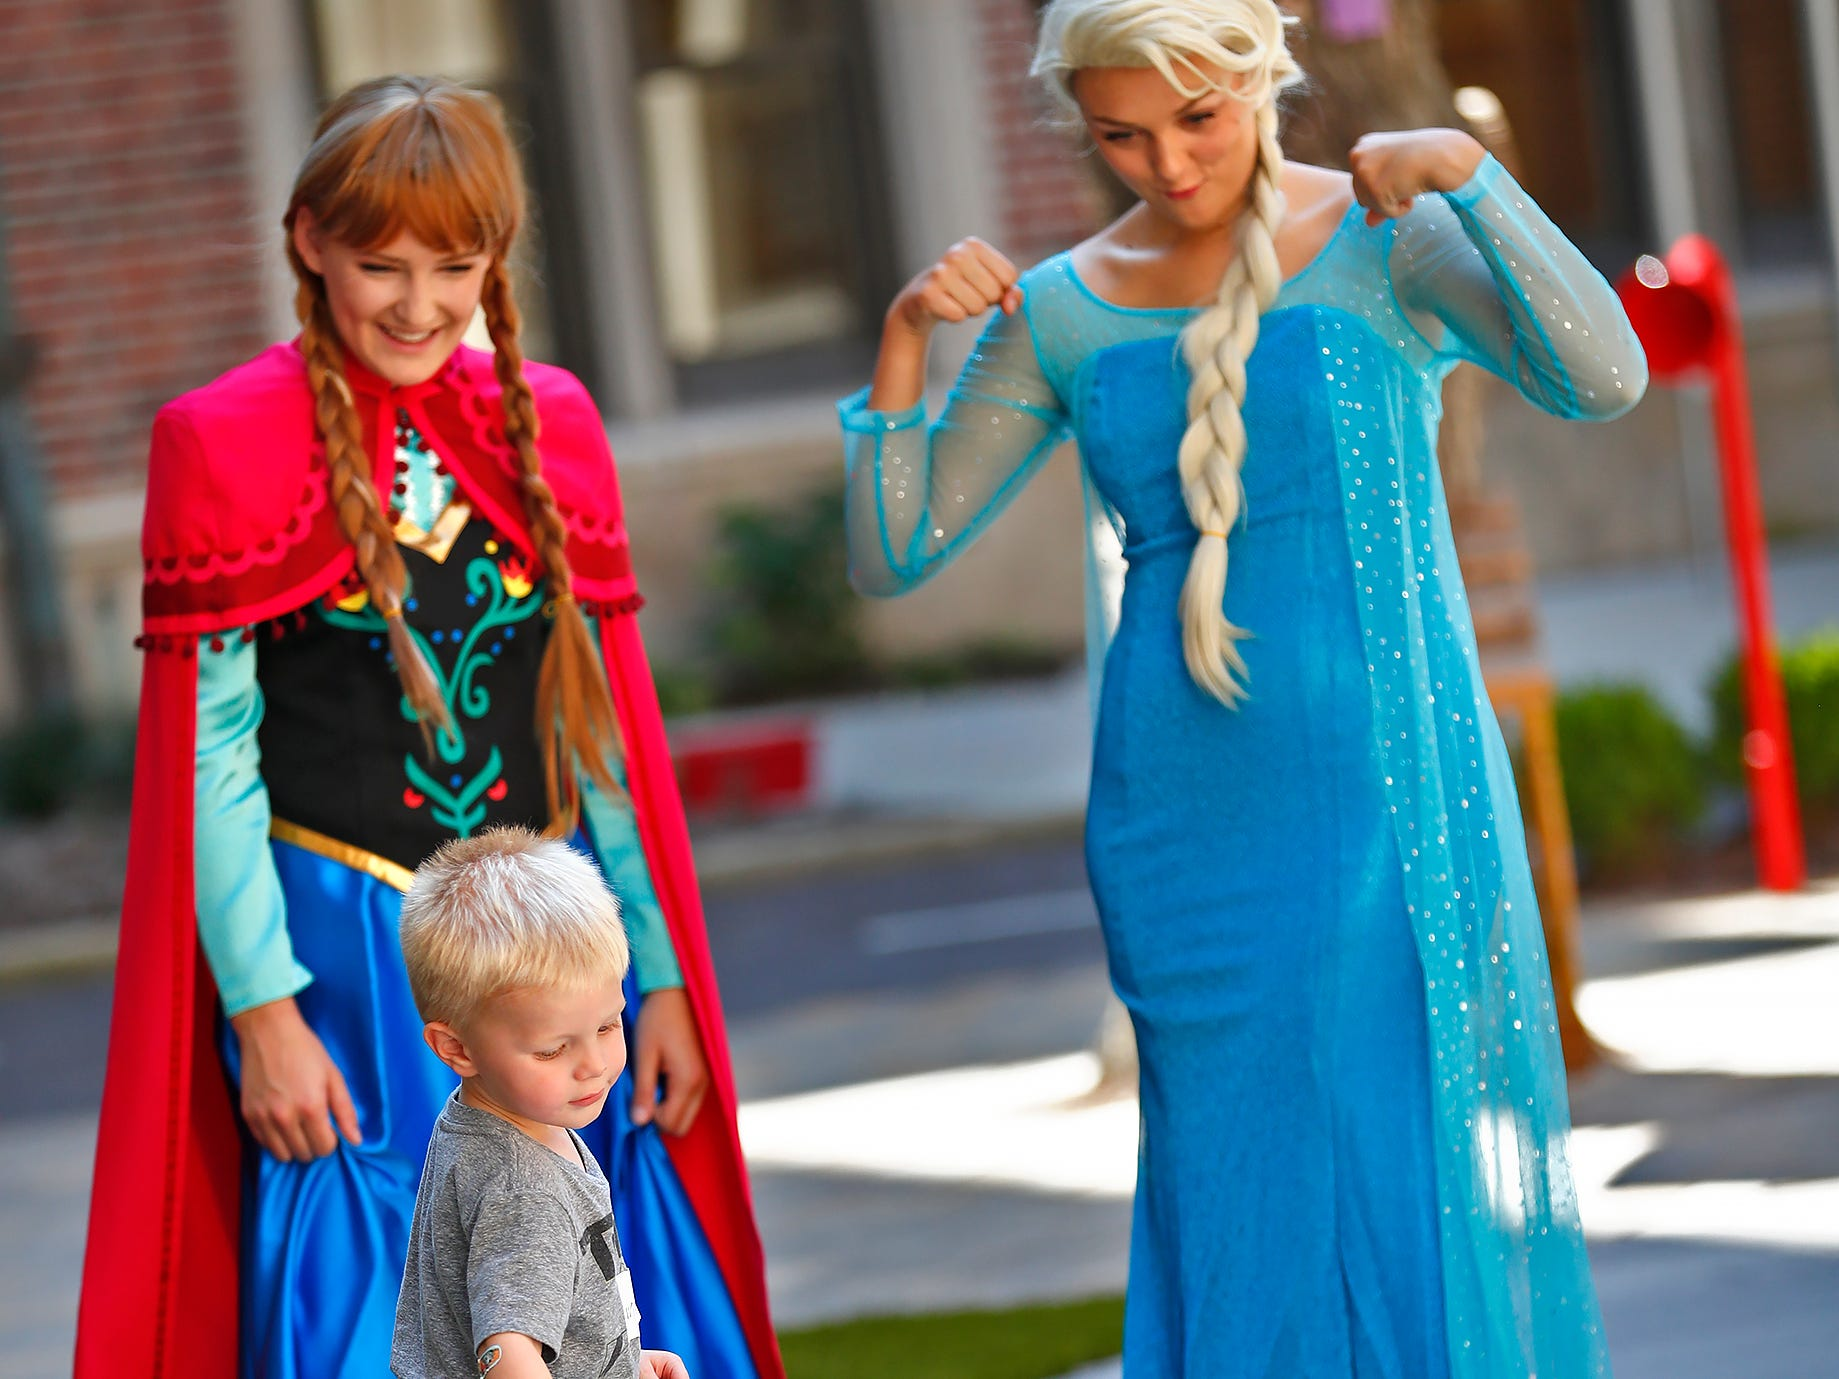 """Anna,"" Emily Boehm, left, and ""Elsa,"" Emily Greggs, both characters from Frozen, play with Owen Kuebler at Riley Children's Health, Friday, Sept. 13, 2018. IU students with ""Royal Encounters"" entertained patients and their families at Riley.  Princesses and a Prince, with the volunteer group, brought smiles to the kids with their visit."